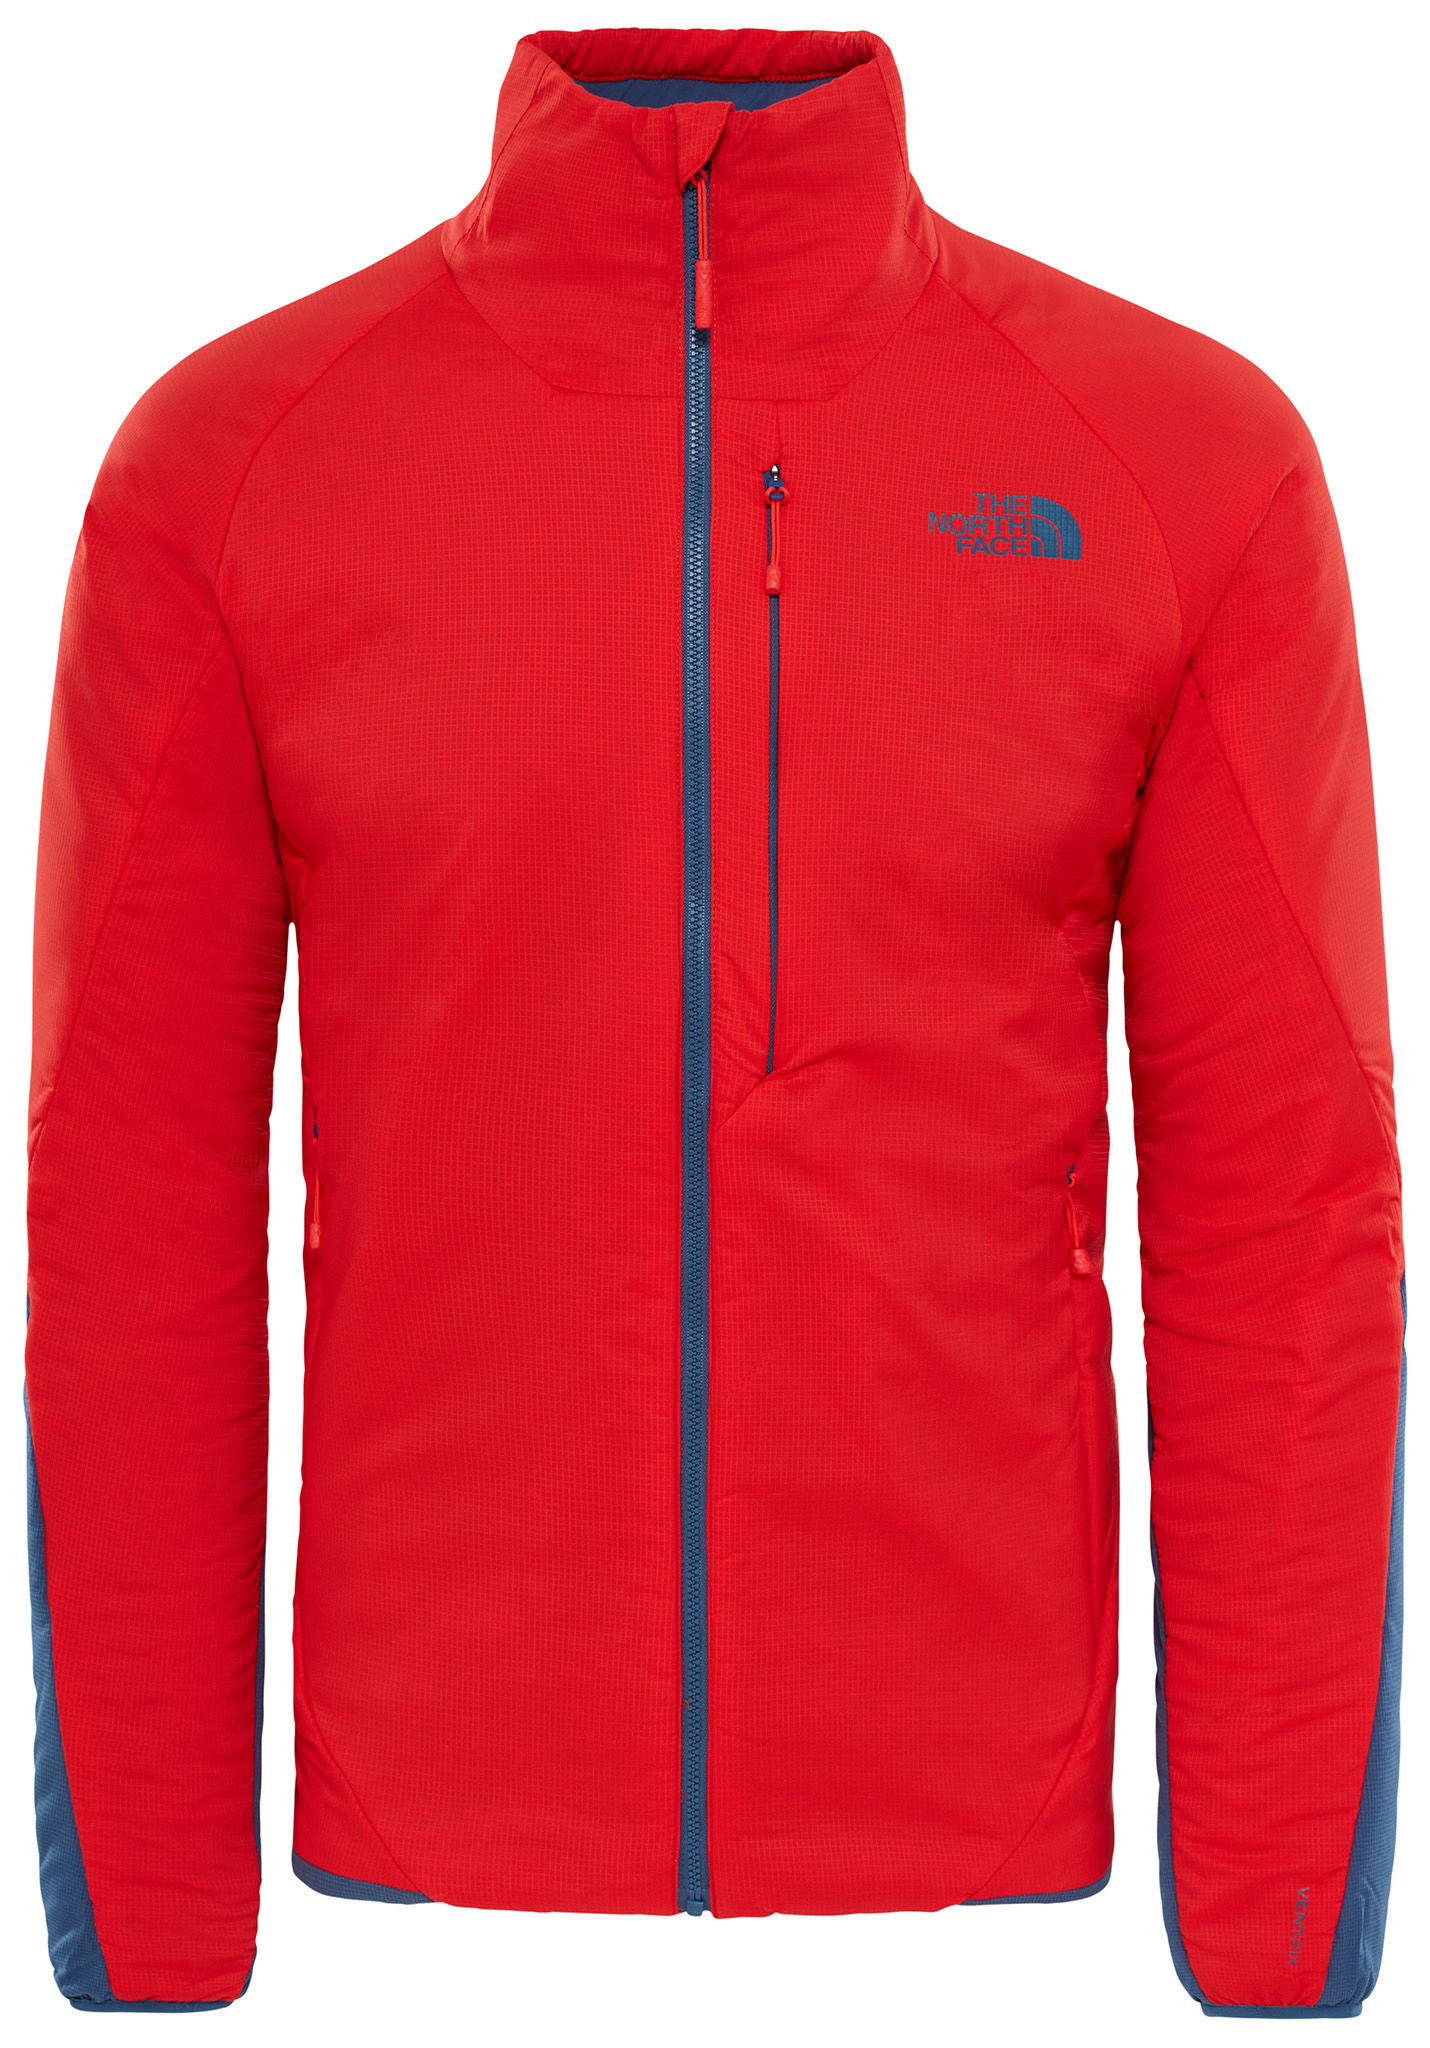 84164694e0 THE NORTH FACE Ventrix - Outdoorjacke für Herren - Rot - Planet Sports